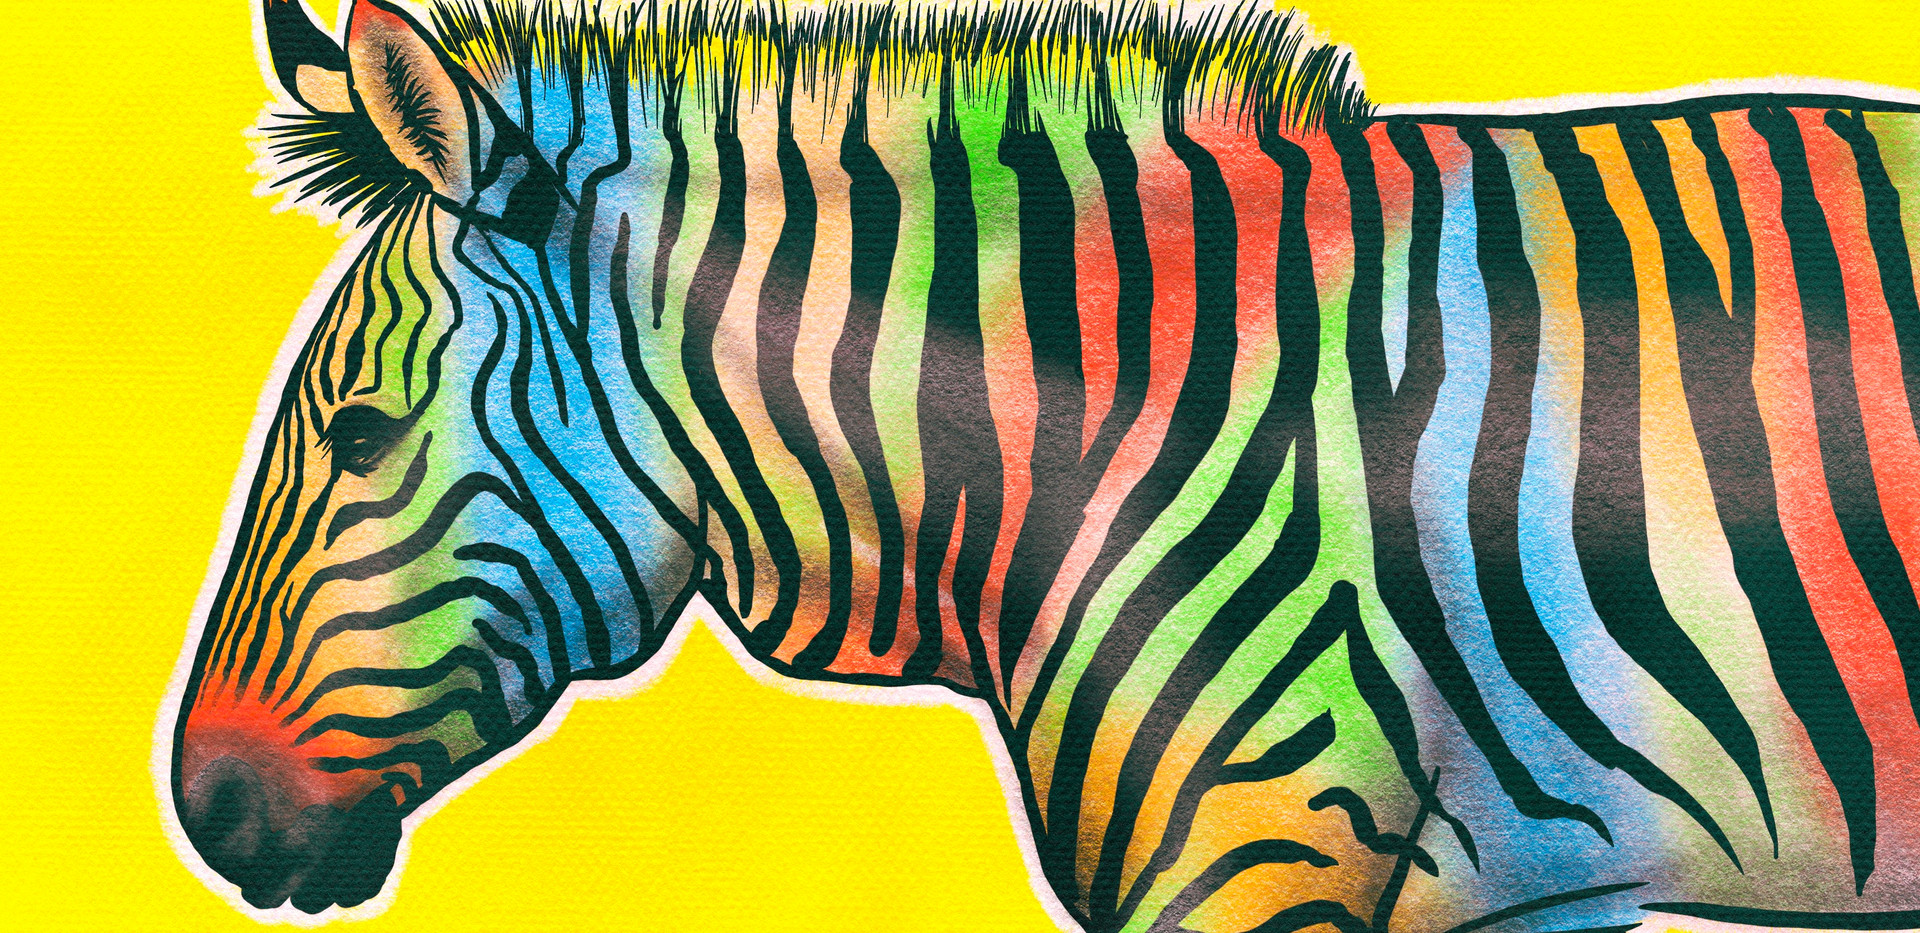 Joseph Grice Rainbow Zebra Digital Illustration